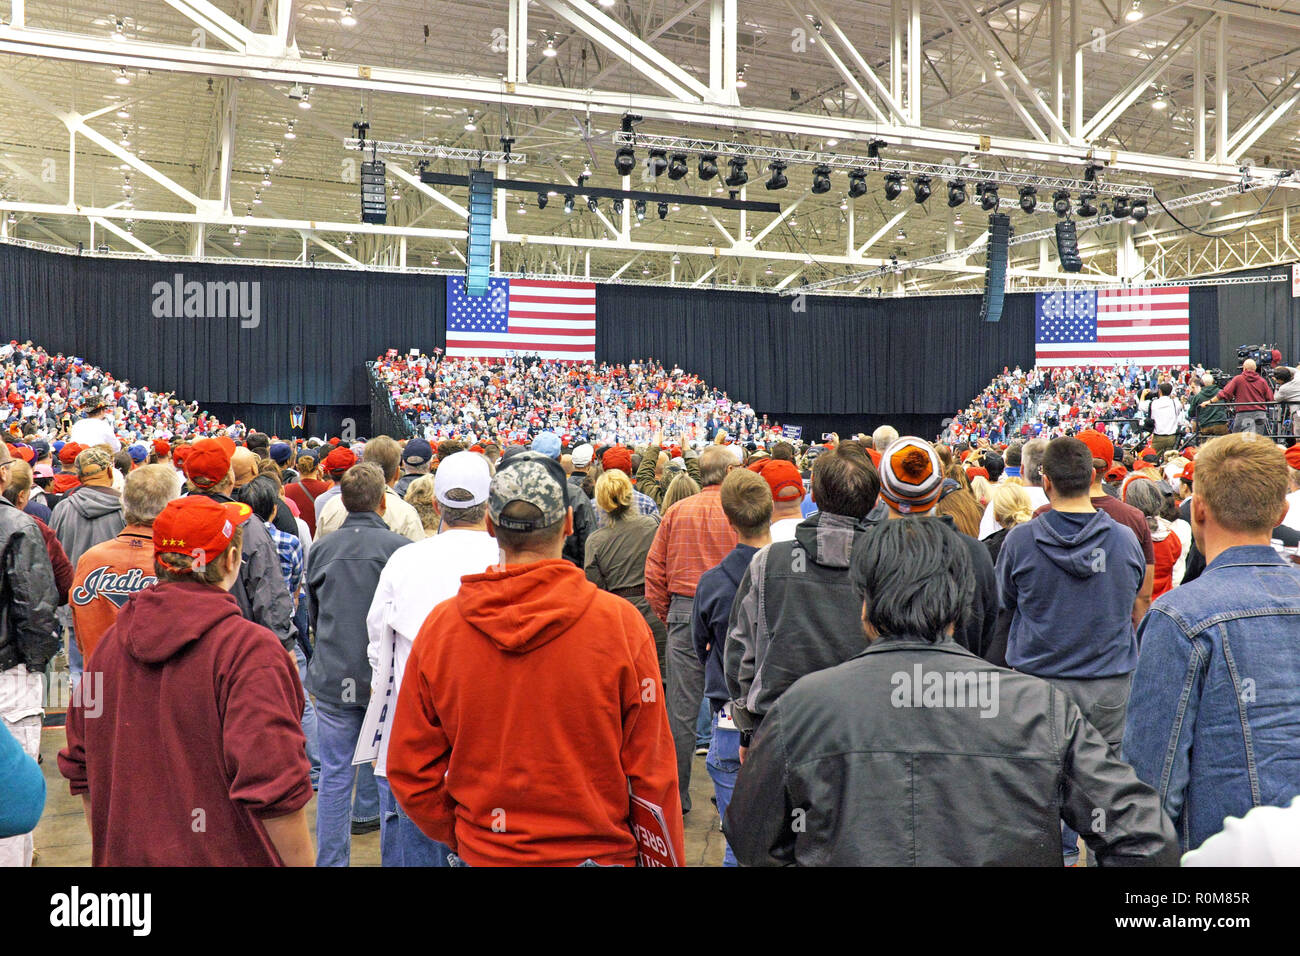 Cleveland, Ohio, USA, 5th Nov, 2018.  Trump supporters fill the Cleveland International Exposition Center in Cleveland, Ohio, USA for a Make America Great Again (MAGA) rally.  Stands are filled and standing room only supporters are there to support the President and the President is there to energize his base to go out and vote during the midterm election.  Credit: Mark Kanning/Alamy Live News. - Stock Image